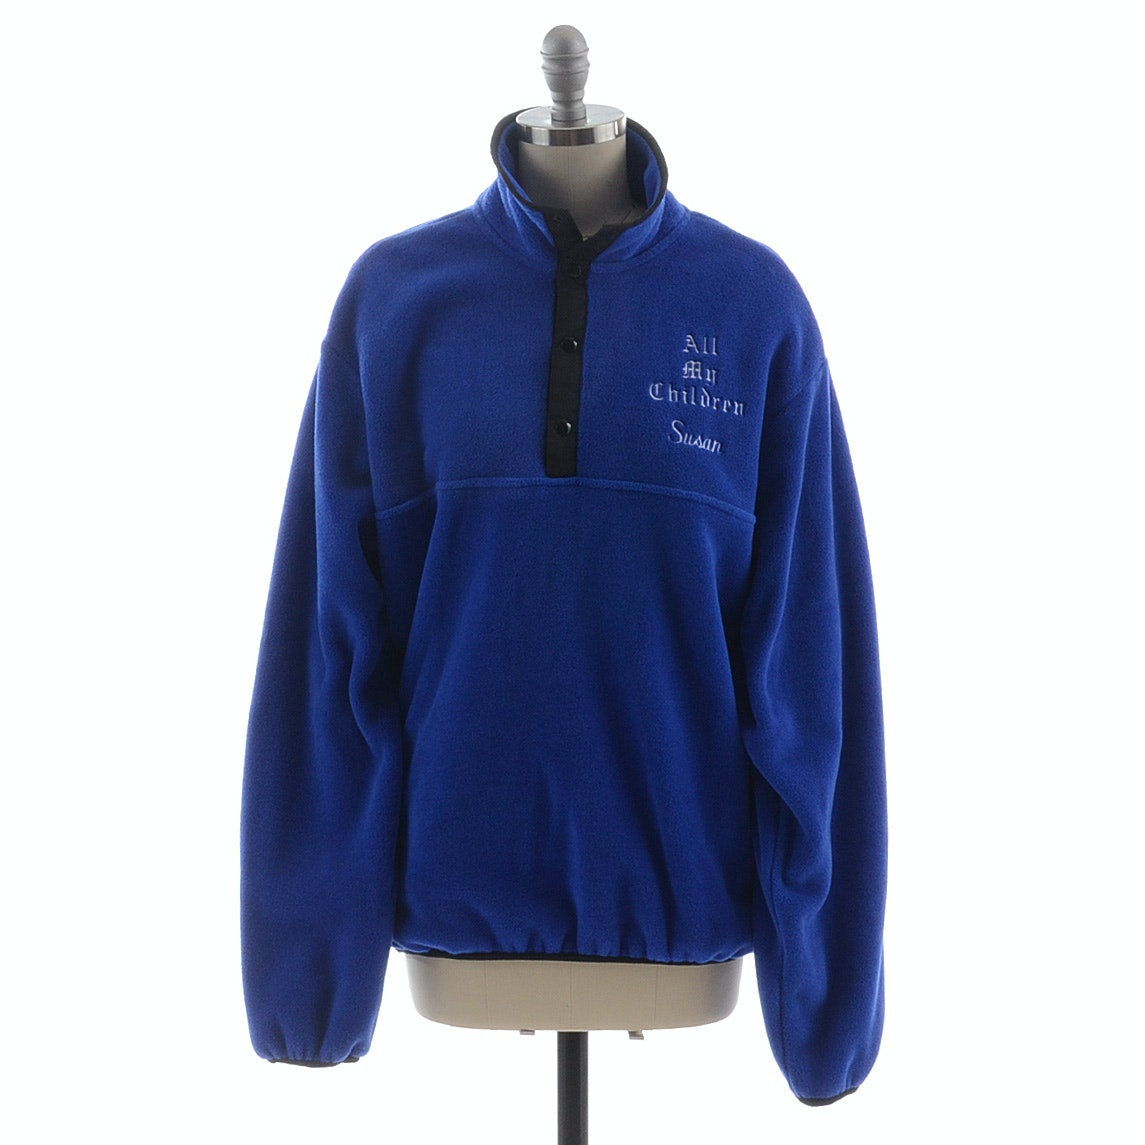 "Susan's ""All My Children"" Embroidered Polartec Royal Blue Fleece Pullover"